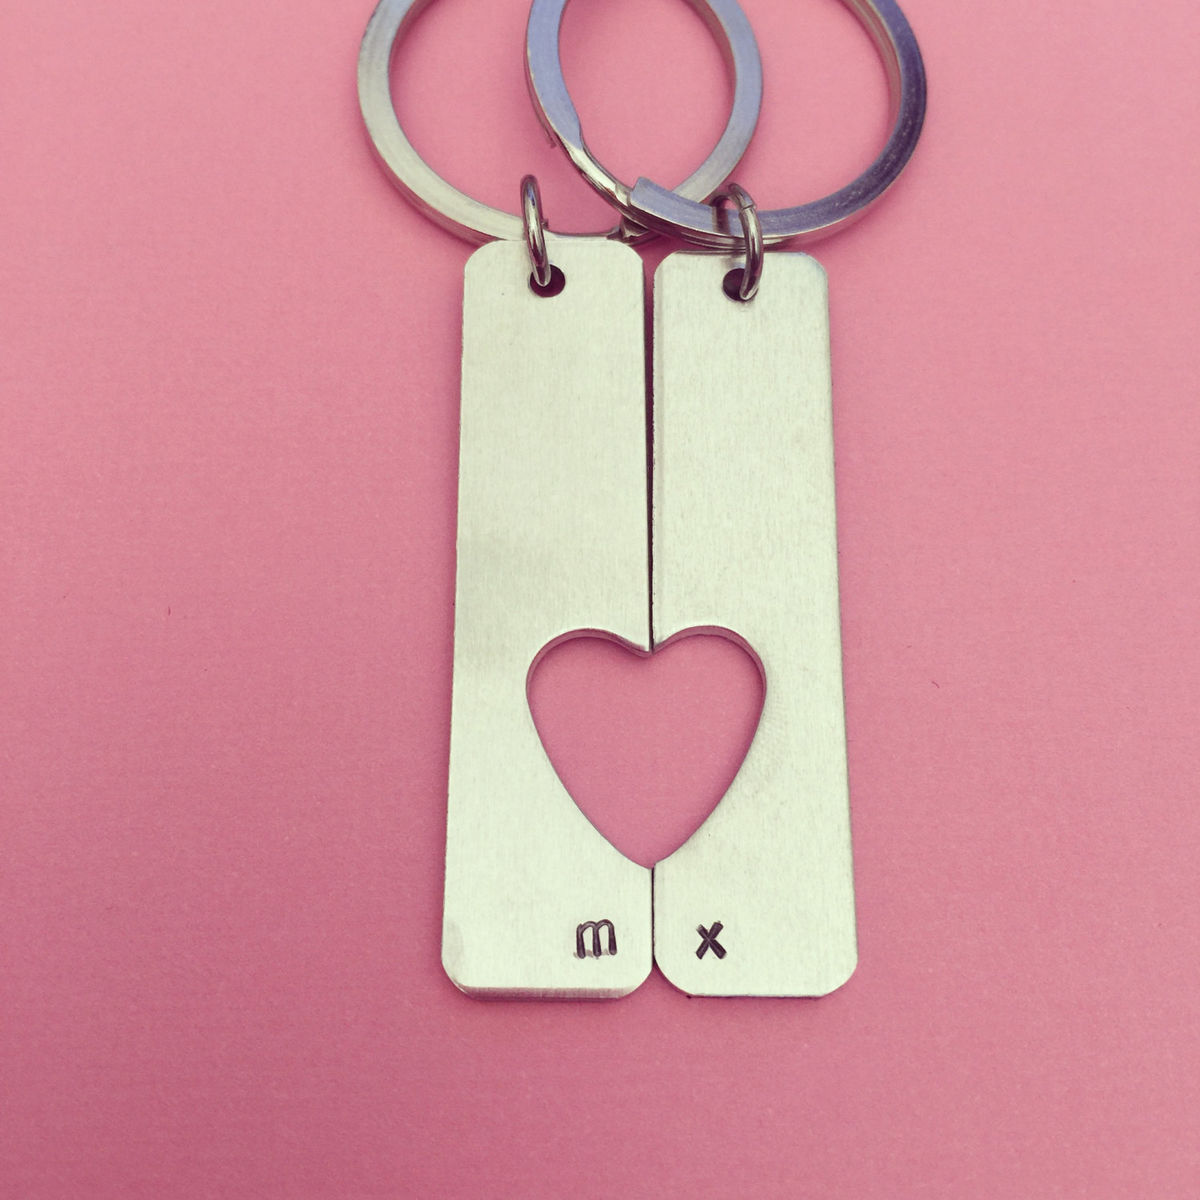 Heart Cut Out Aluminum Bar Keychains, Personalized couples keychains - product image